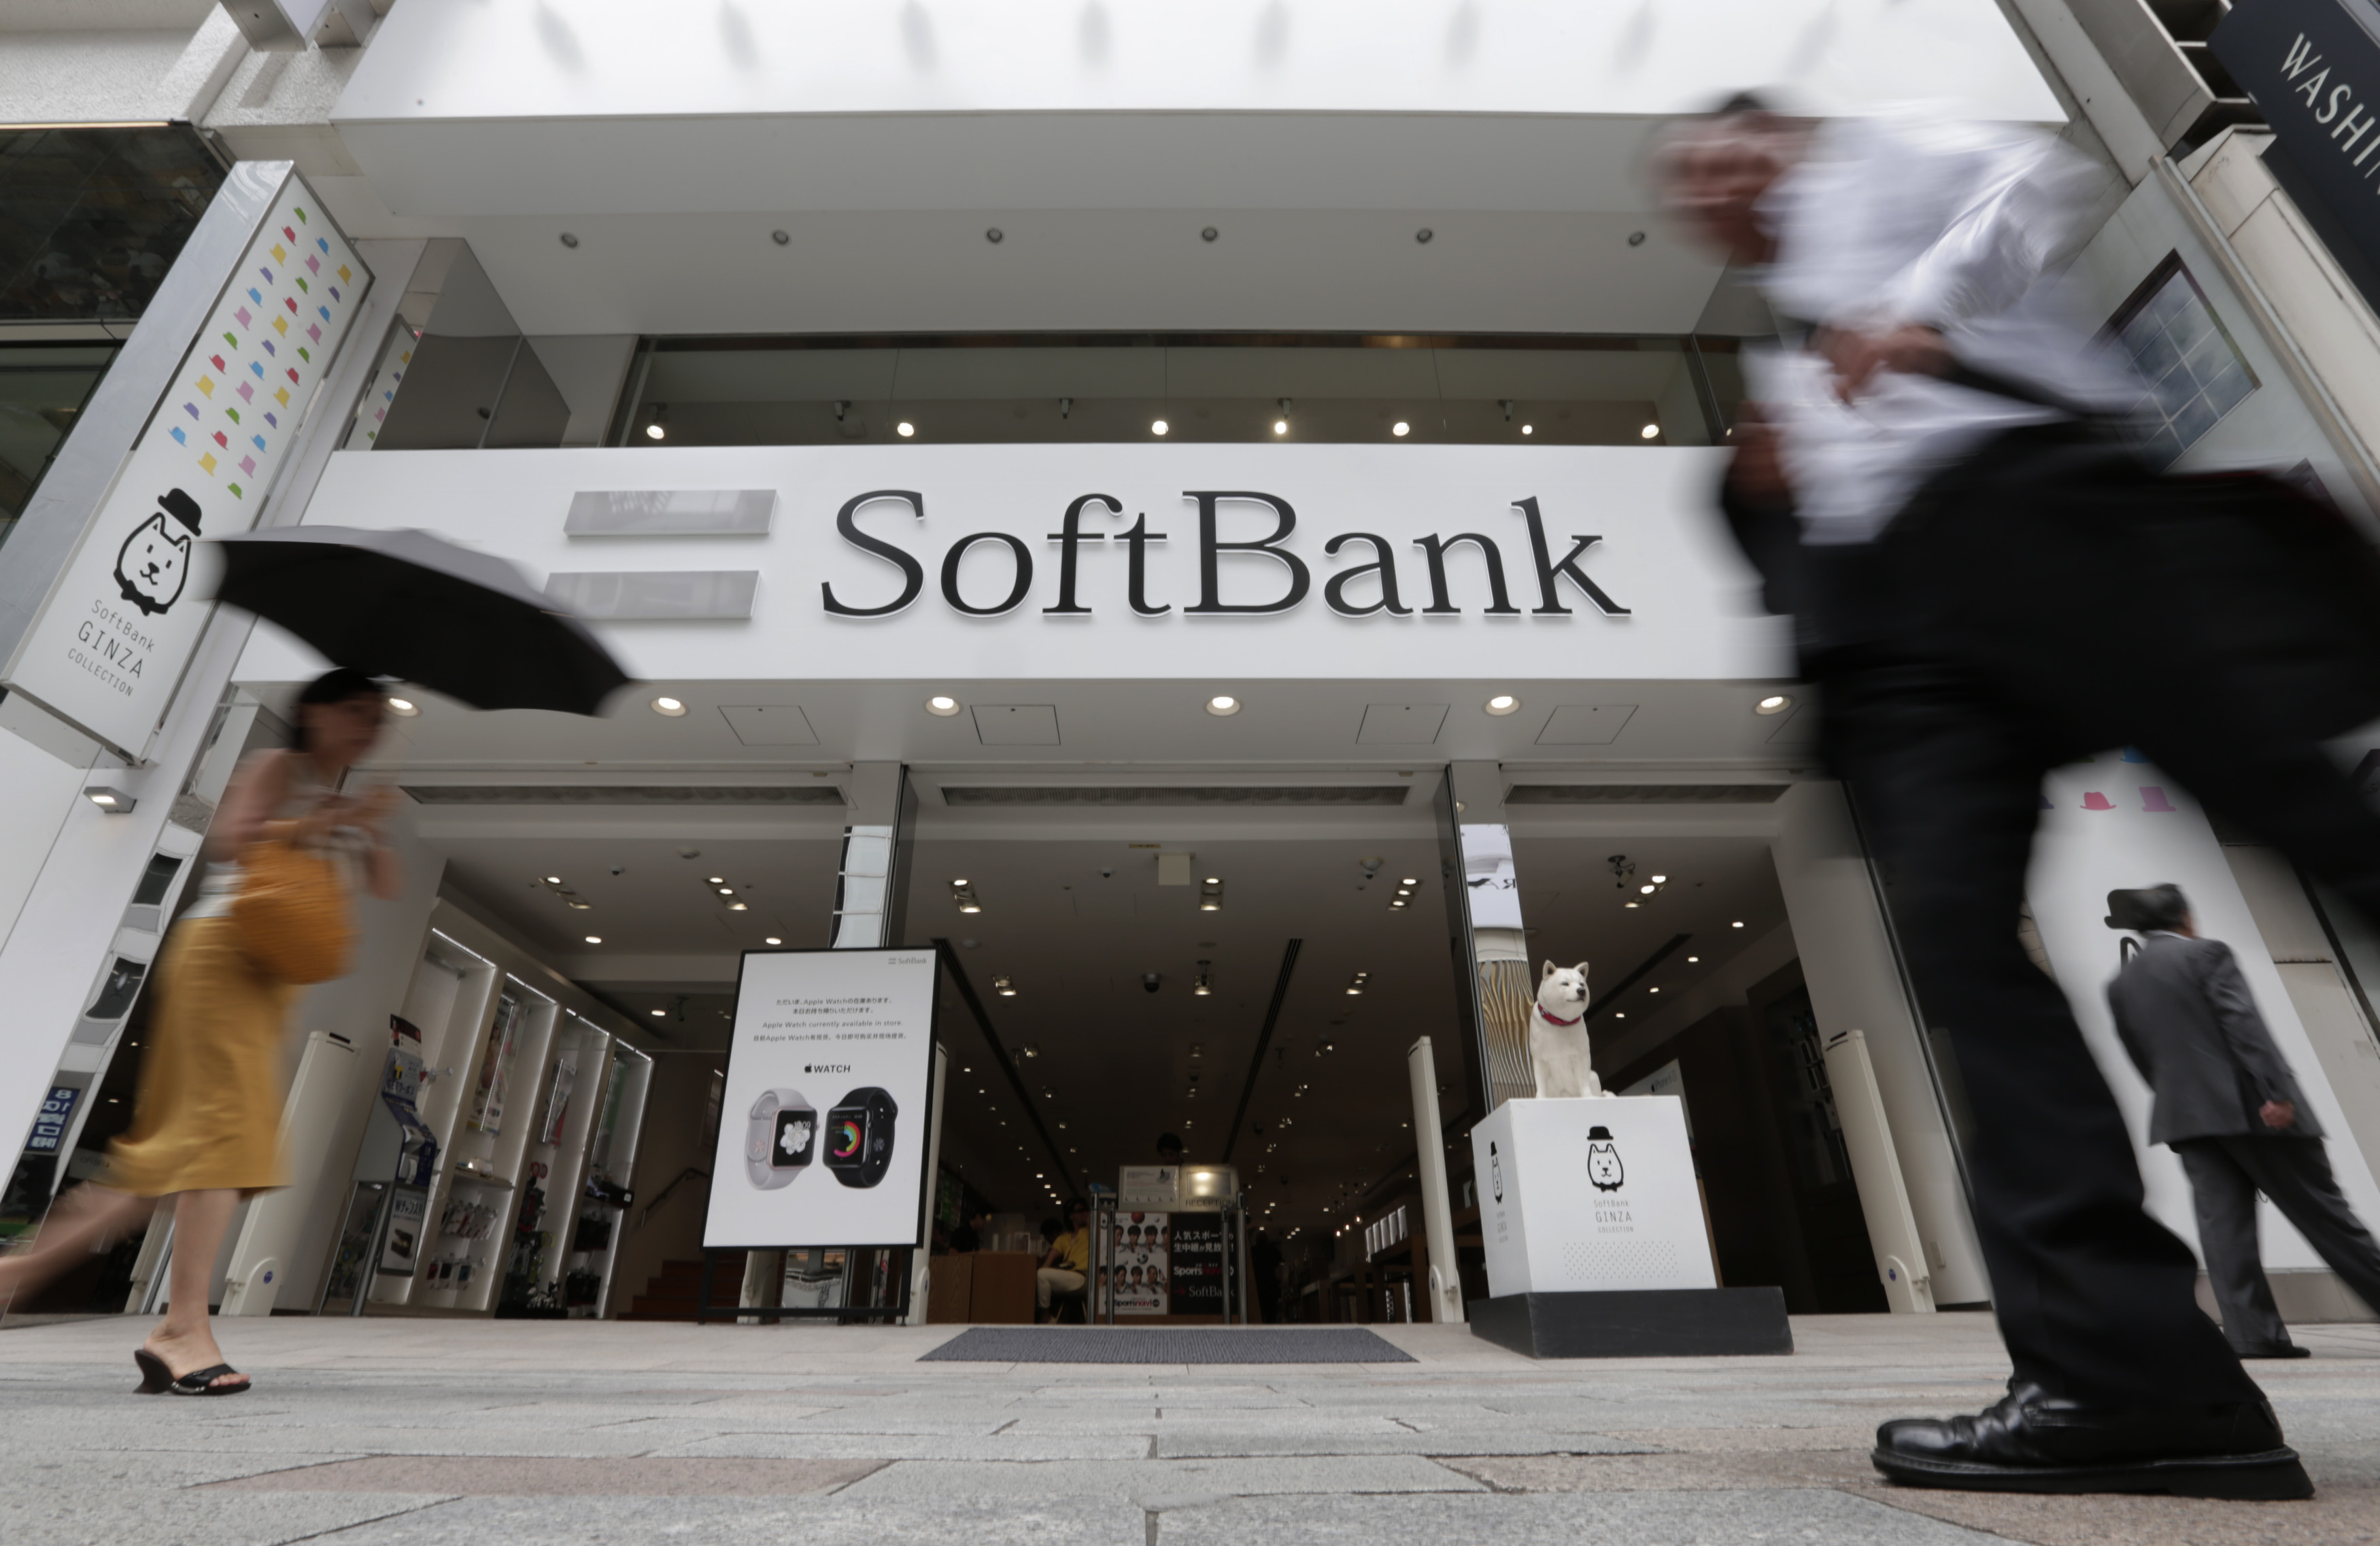 Inside the Softbank Ginza Store Ahead of First Quarter Earnings